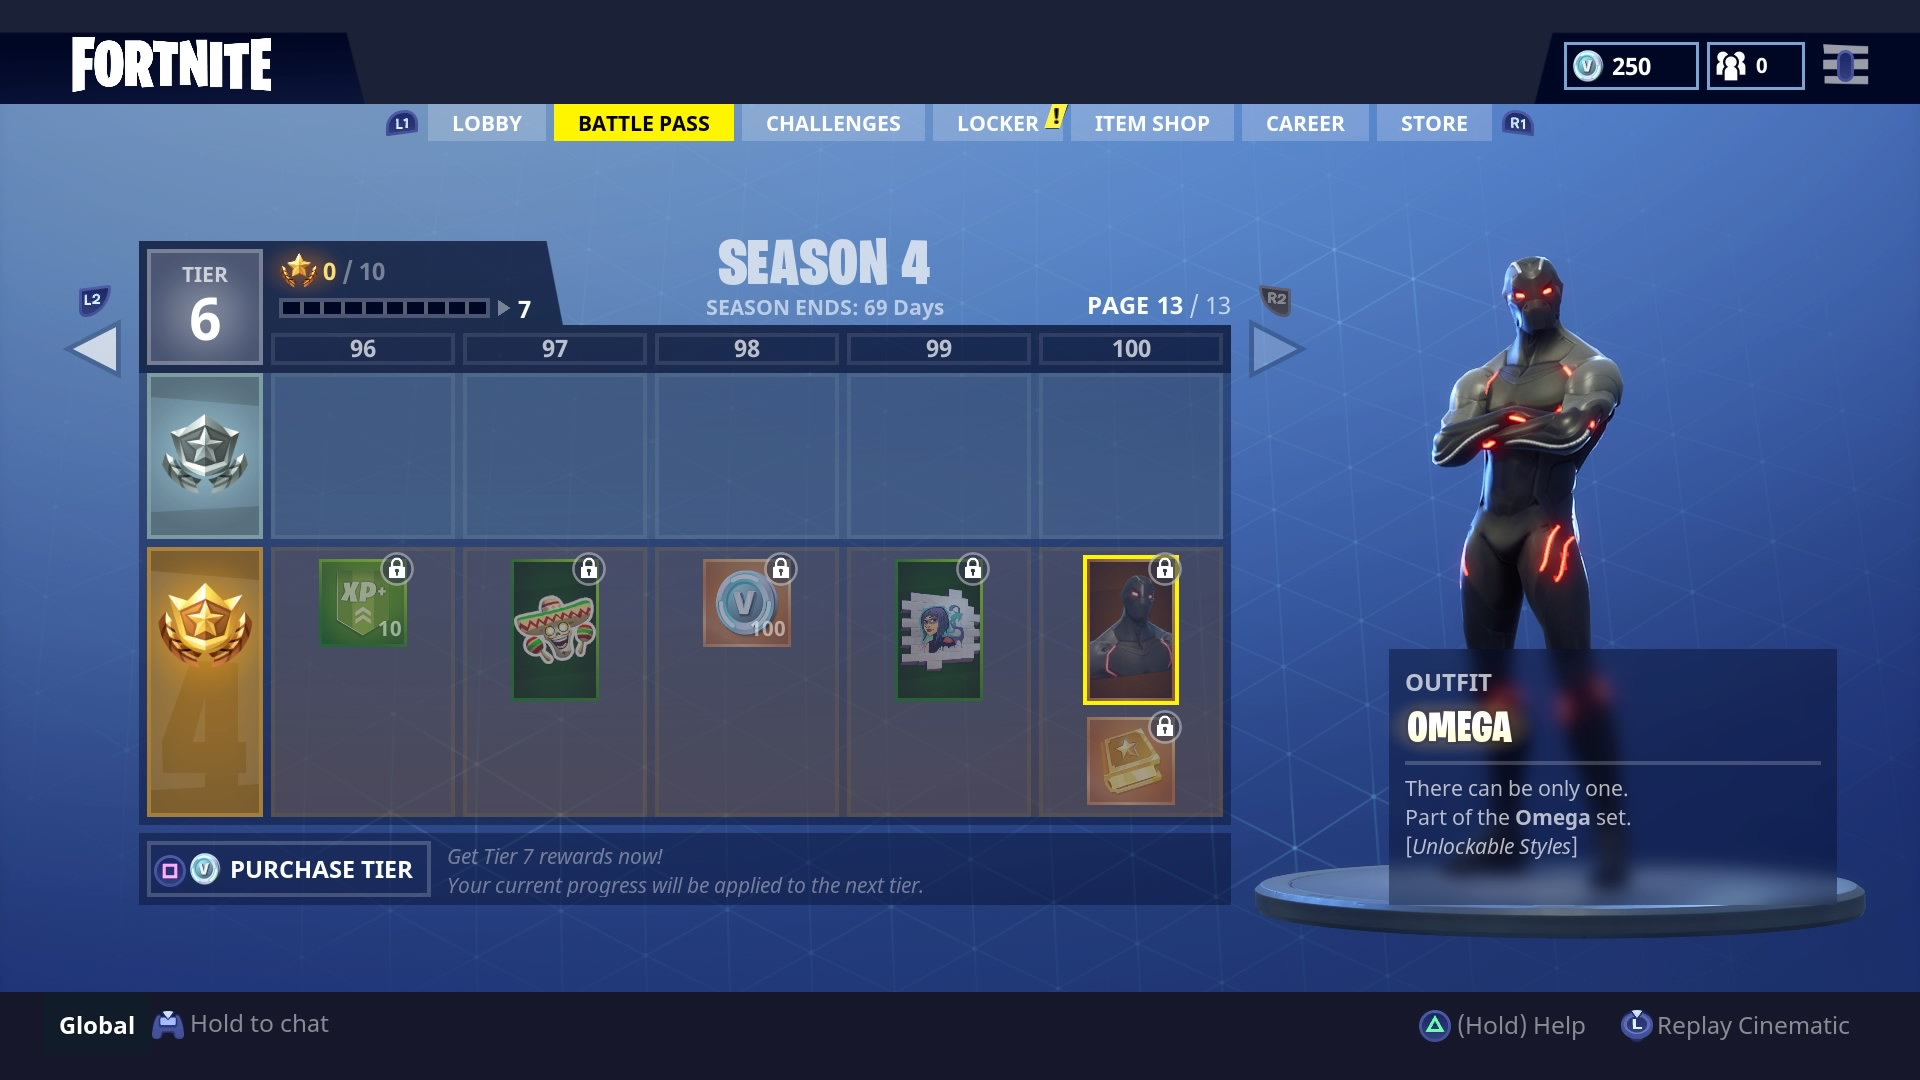 Fortnite Omega Skin What Are The Tier 100 Omega Skin Challenges